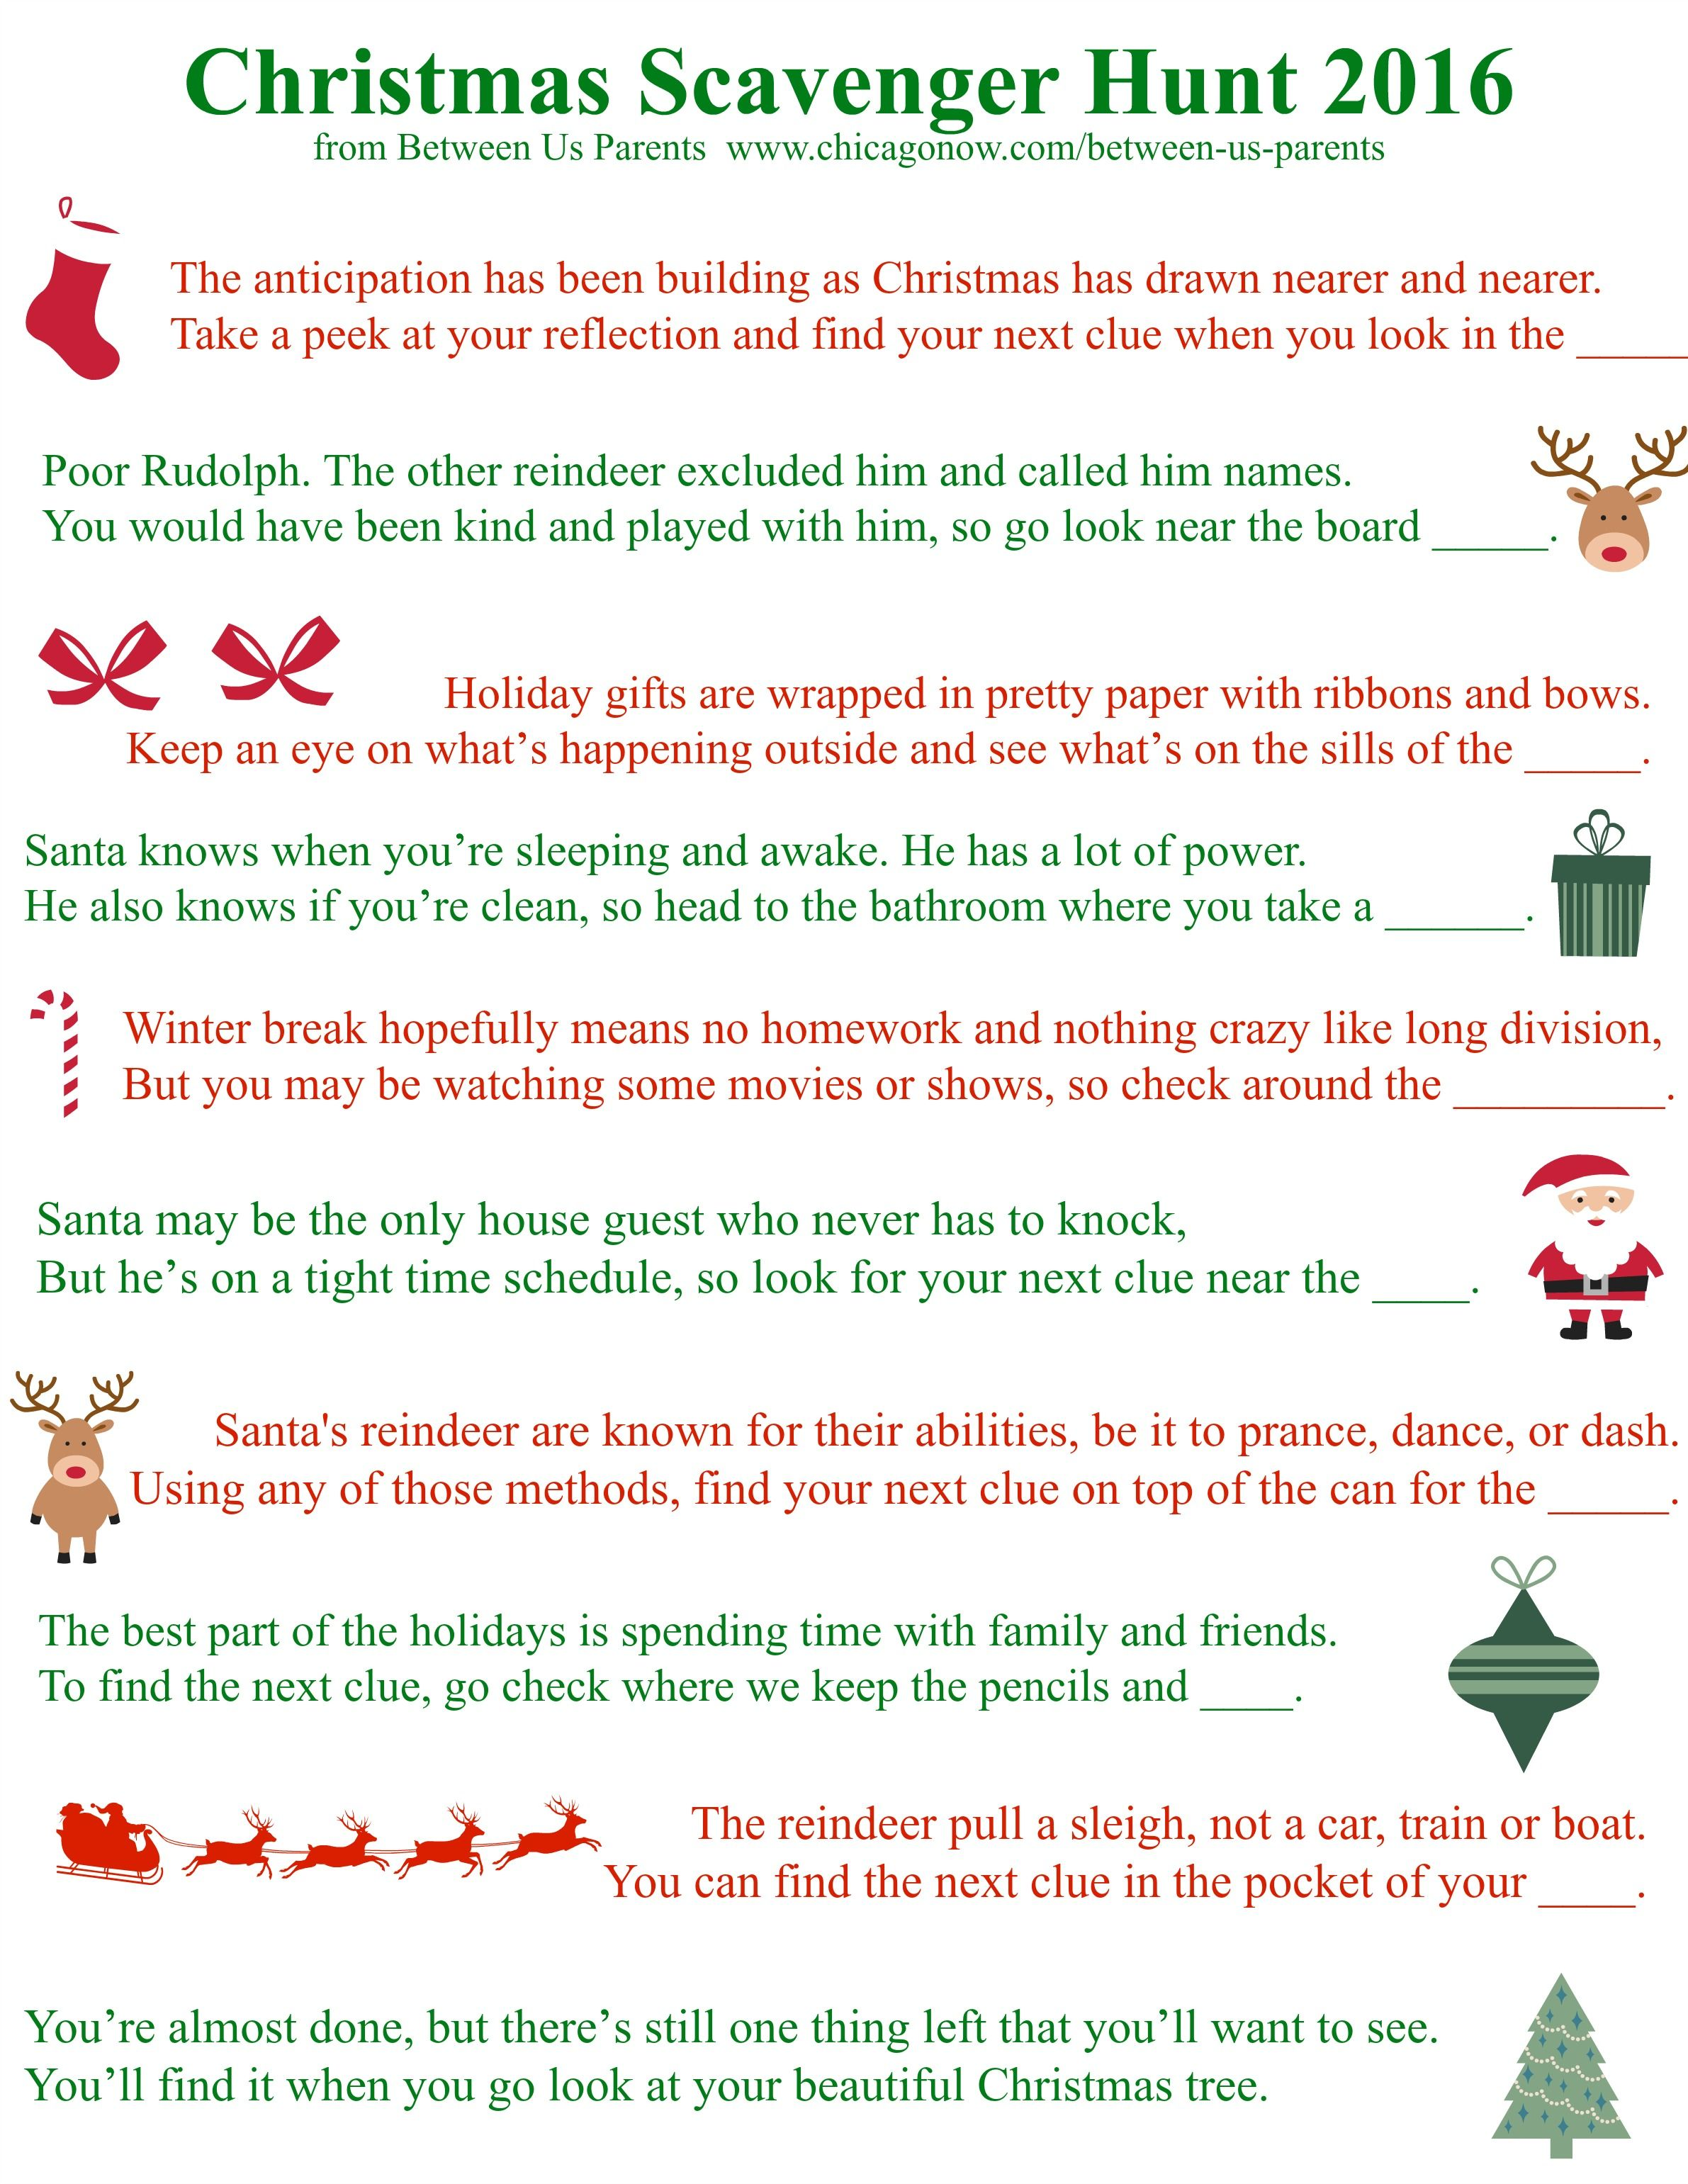 Printable Christmas Scavenger Hunt Clues, 2016 Edition